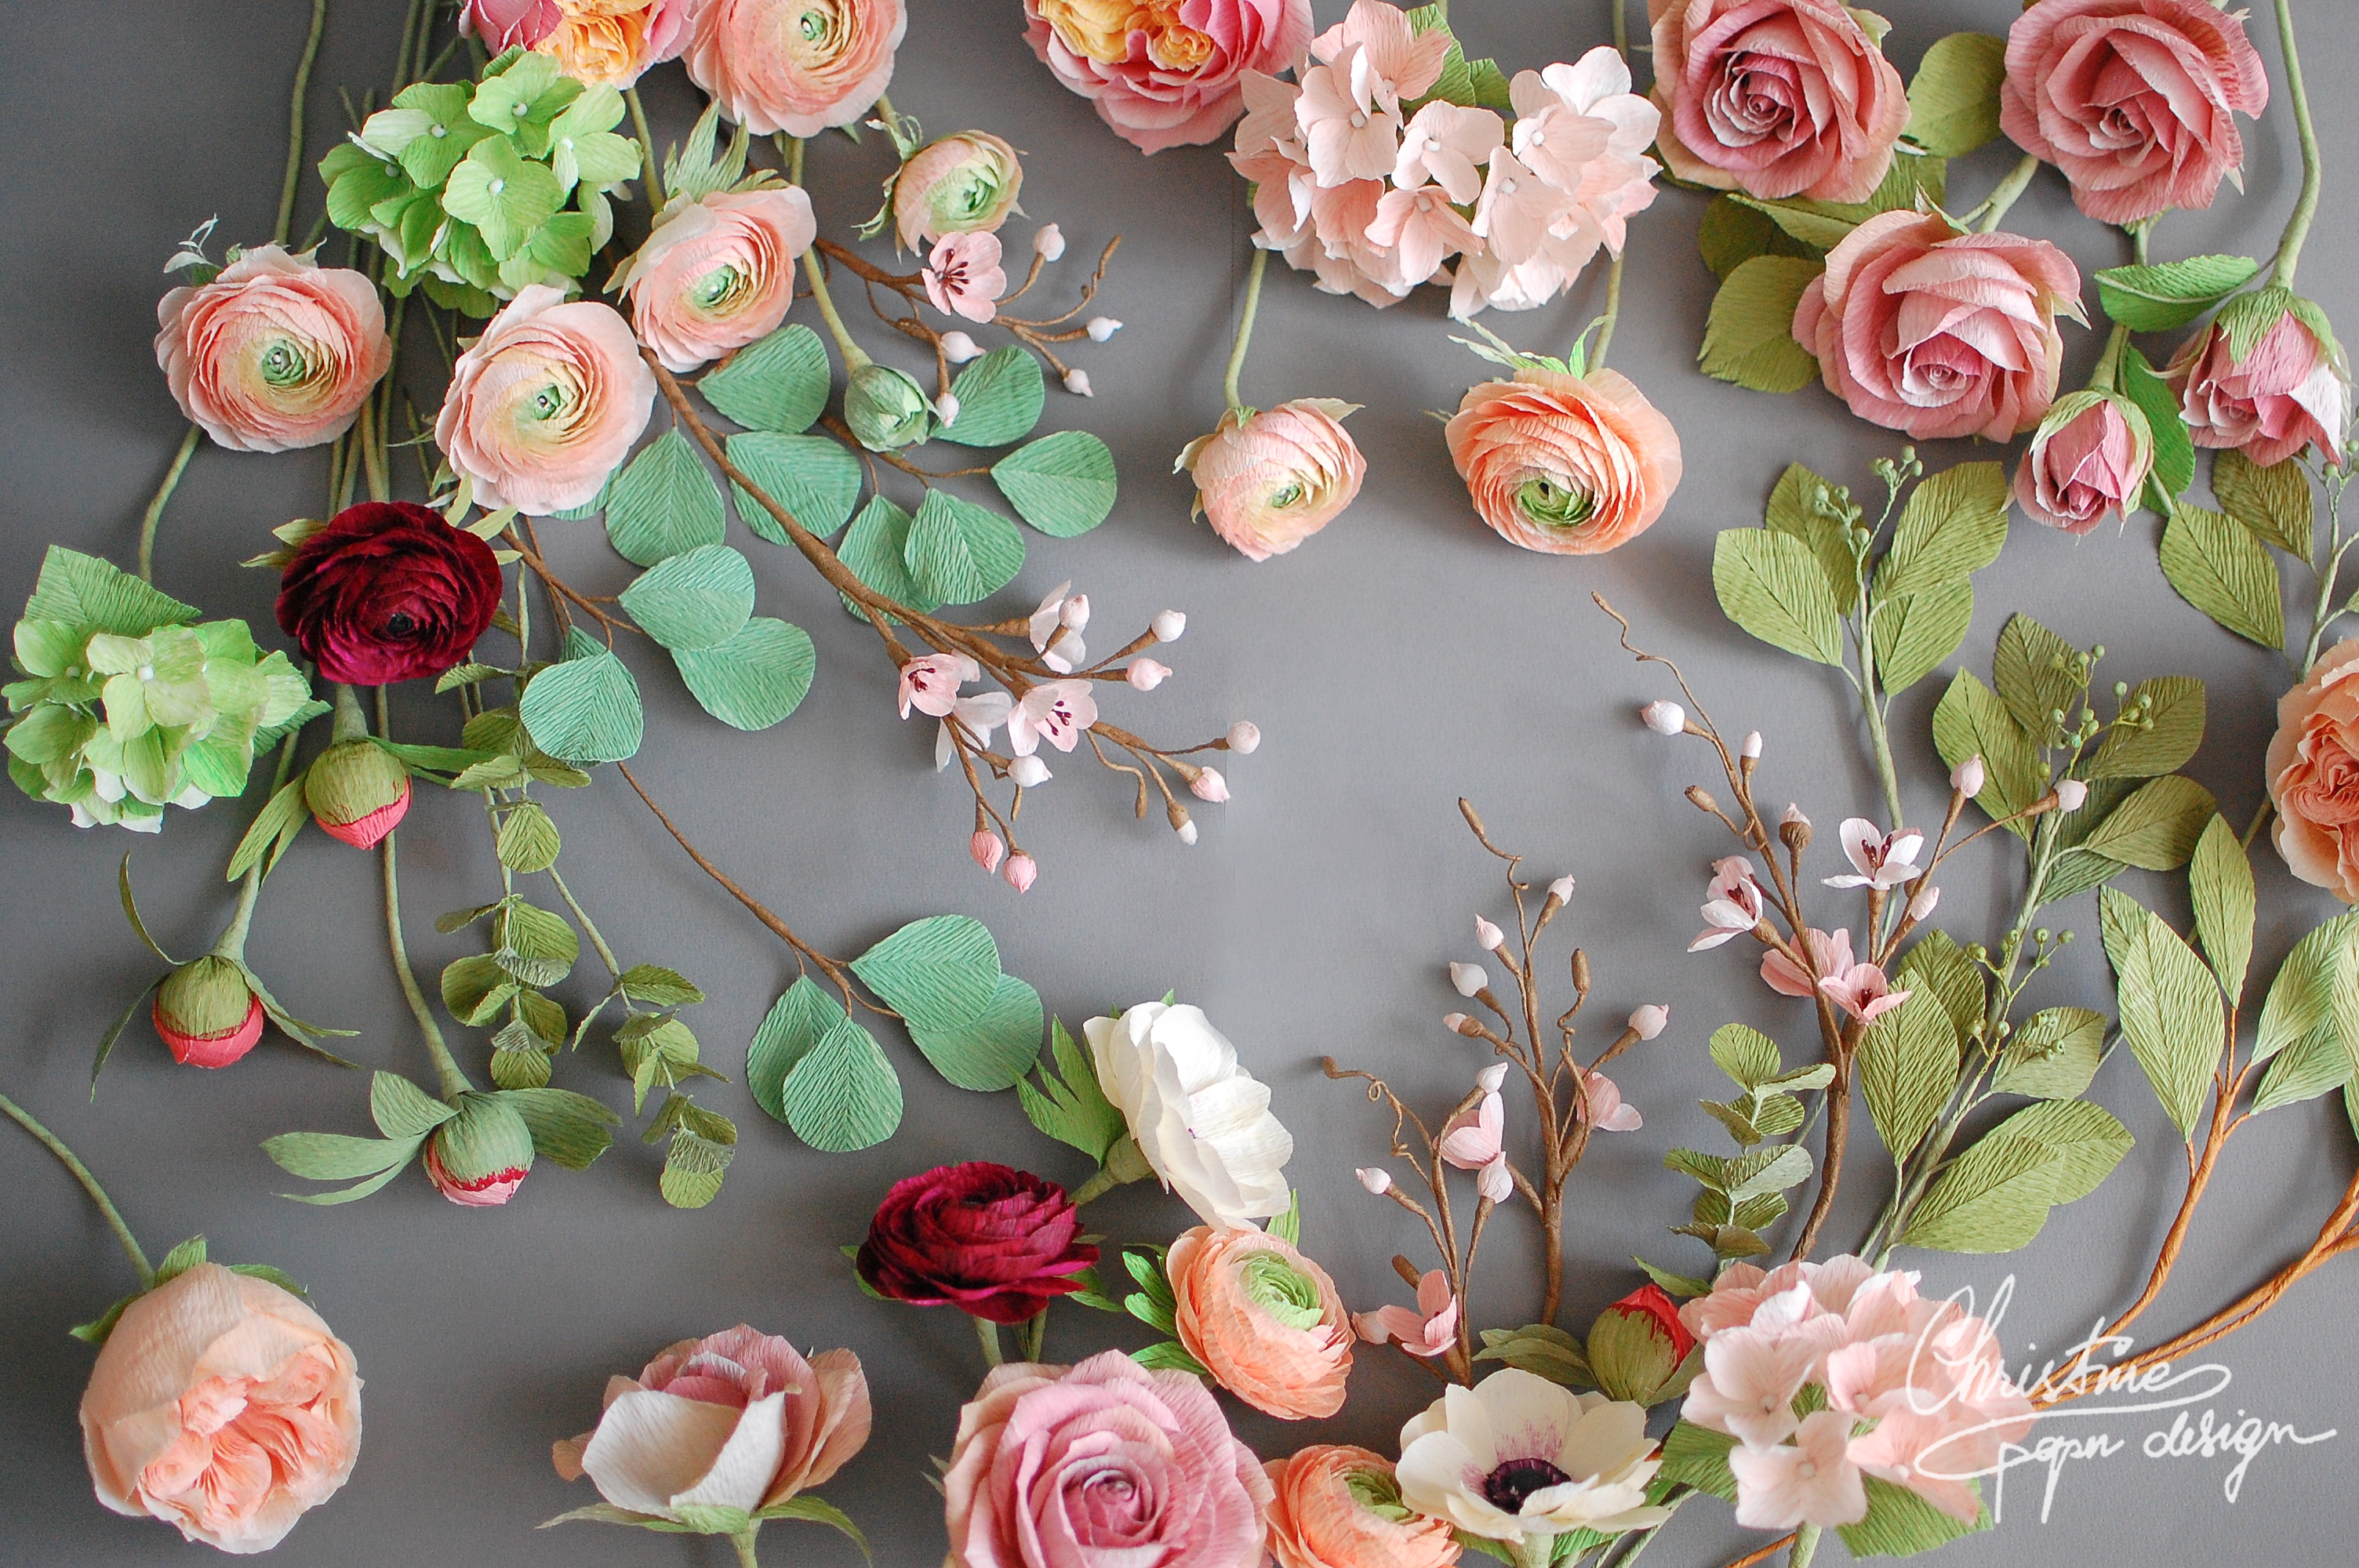 Christine paper design - paper flowers